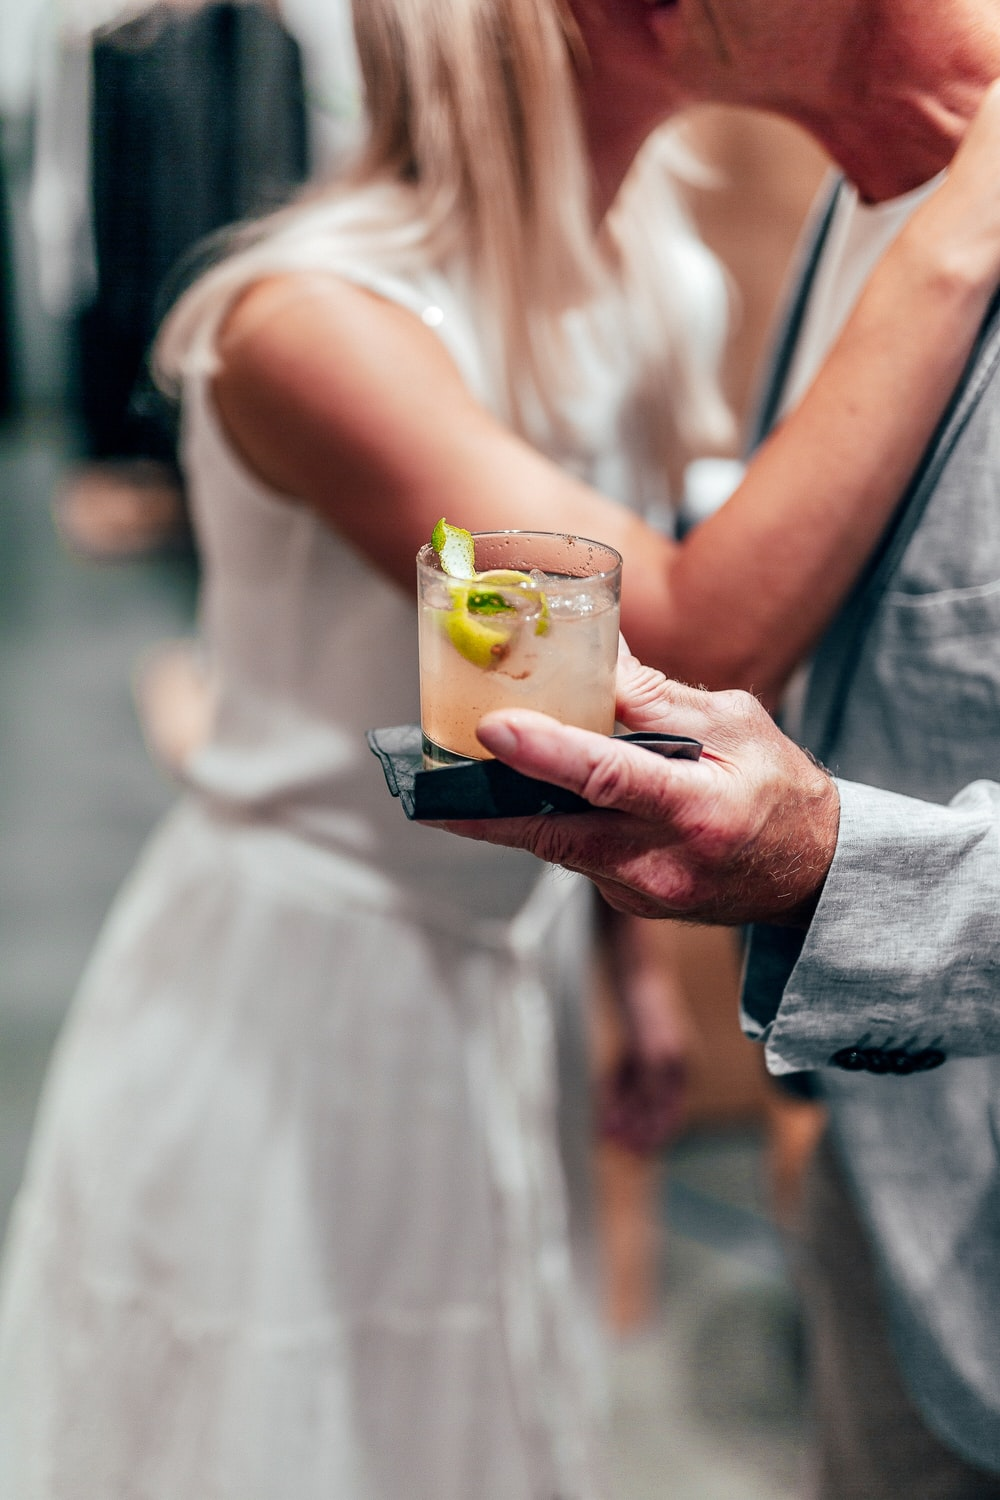 woman in white dress holding drinking glass with yellow liquid